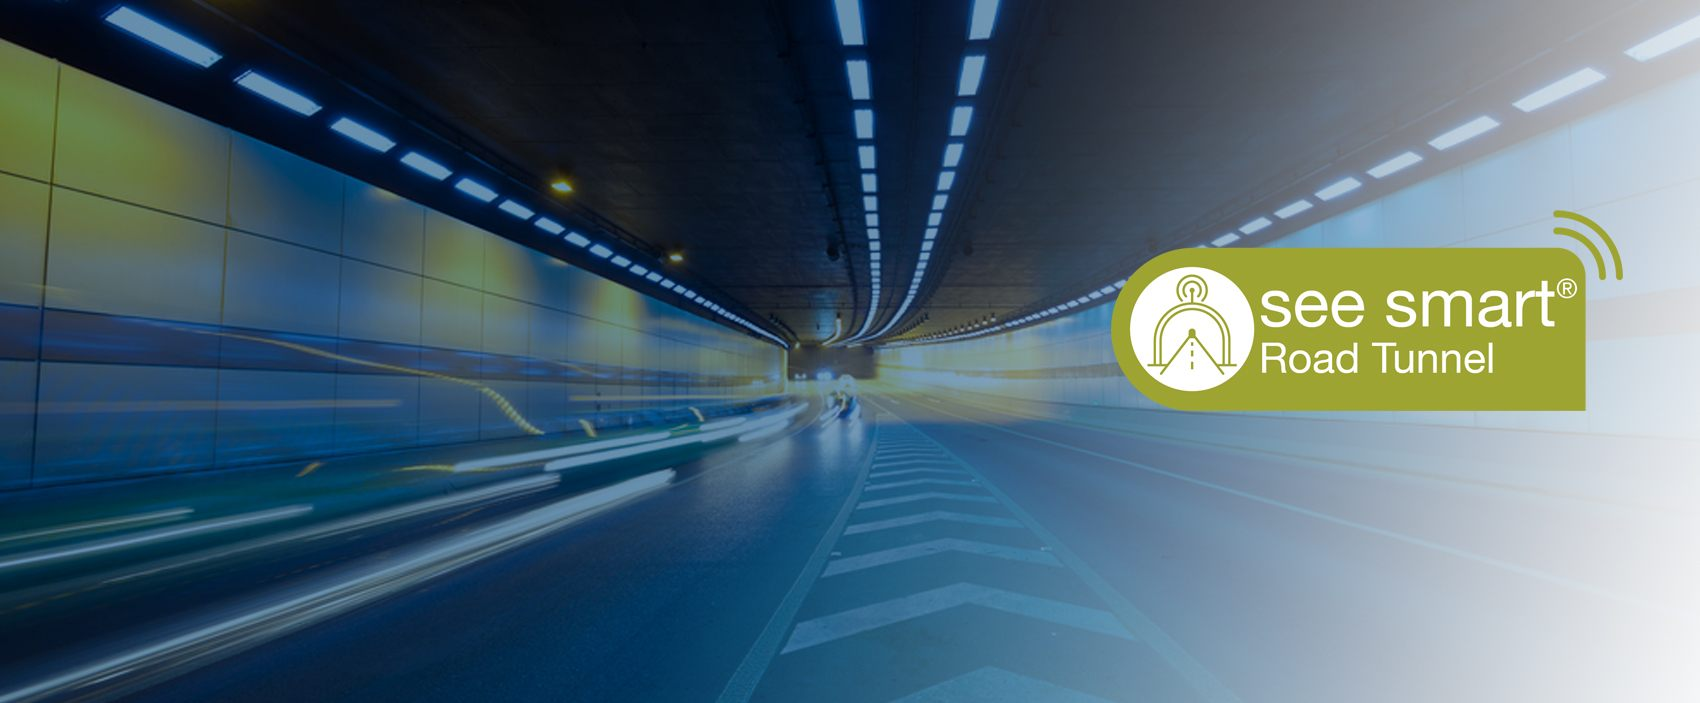 see smart Road Tunnel is an innovative approach of bringing reliable radio coverage to road tunnels